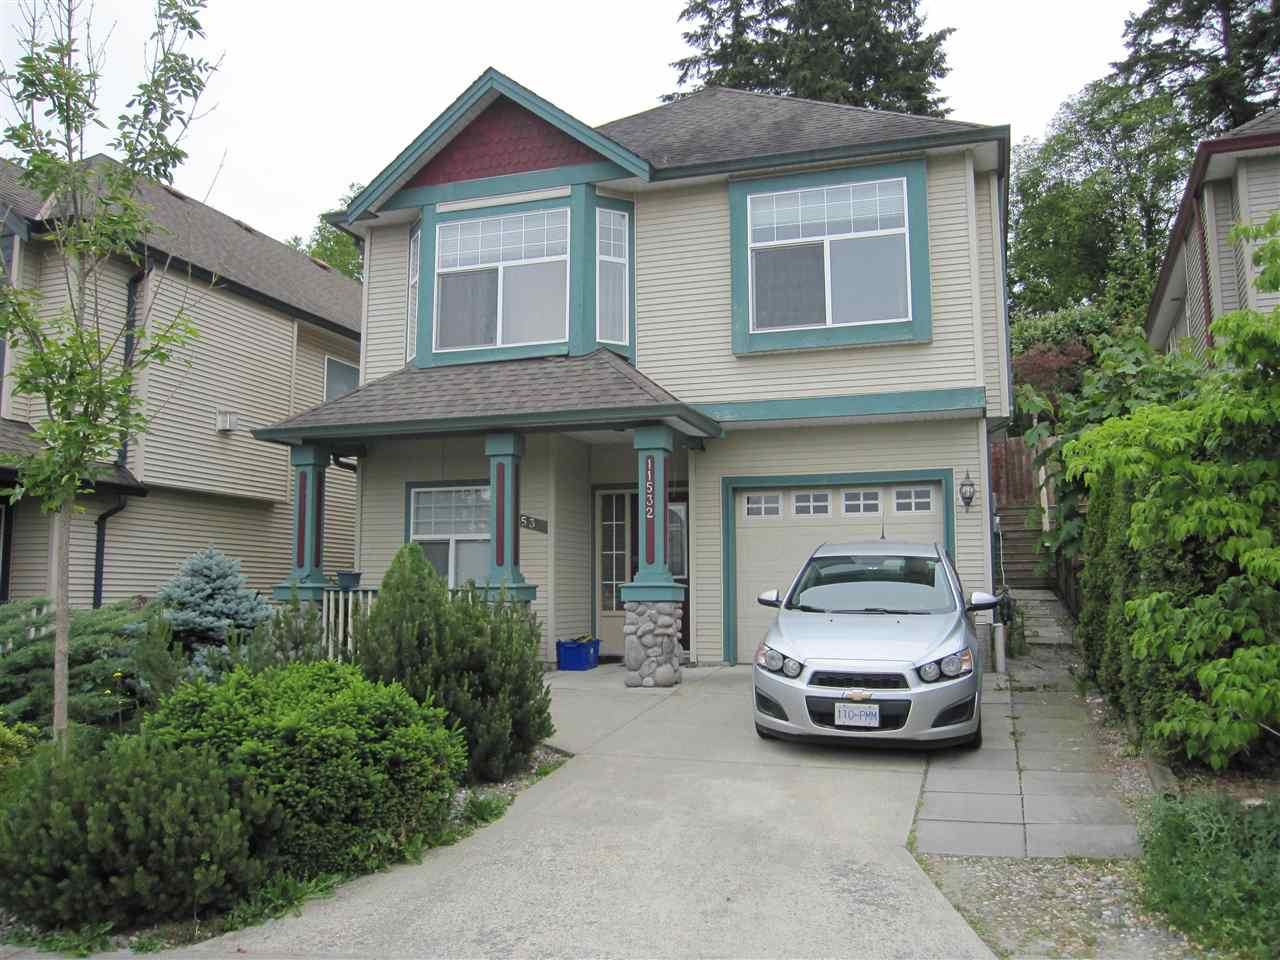 Main Photo: 11532 228 Street in Maple Ridge: East Central House for sale : MLS® # R2069865